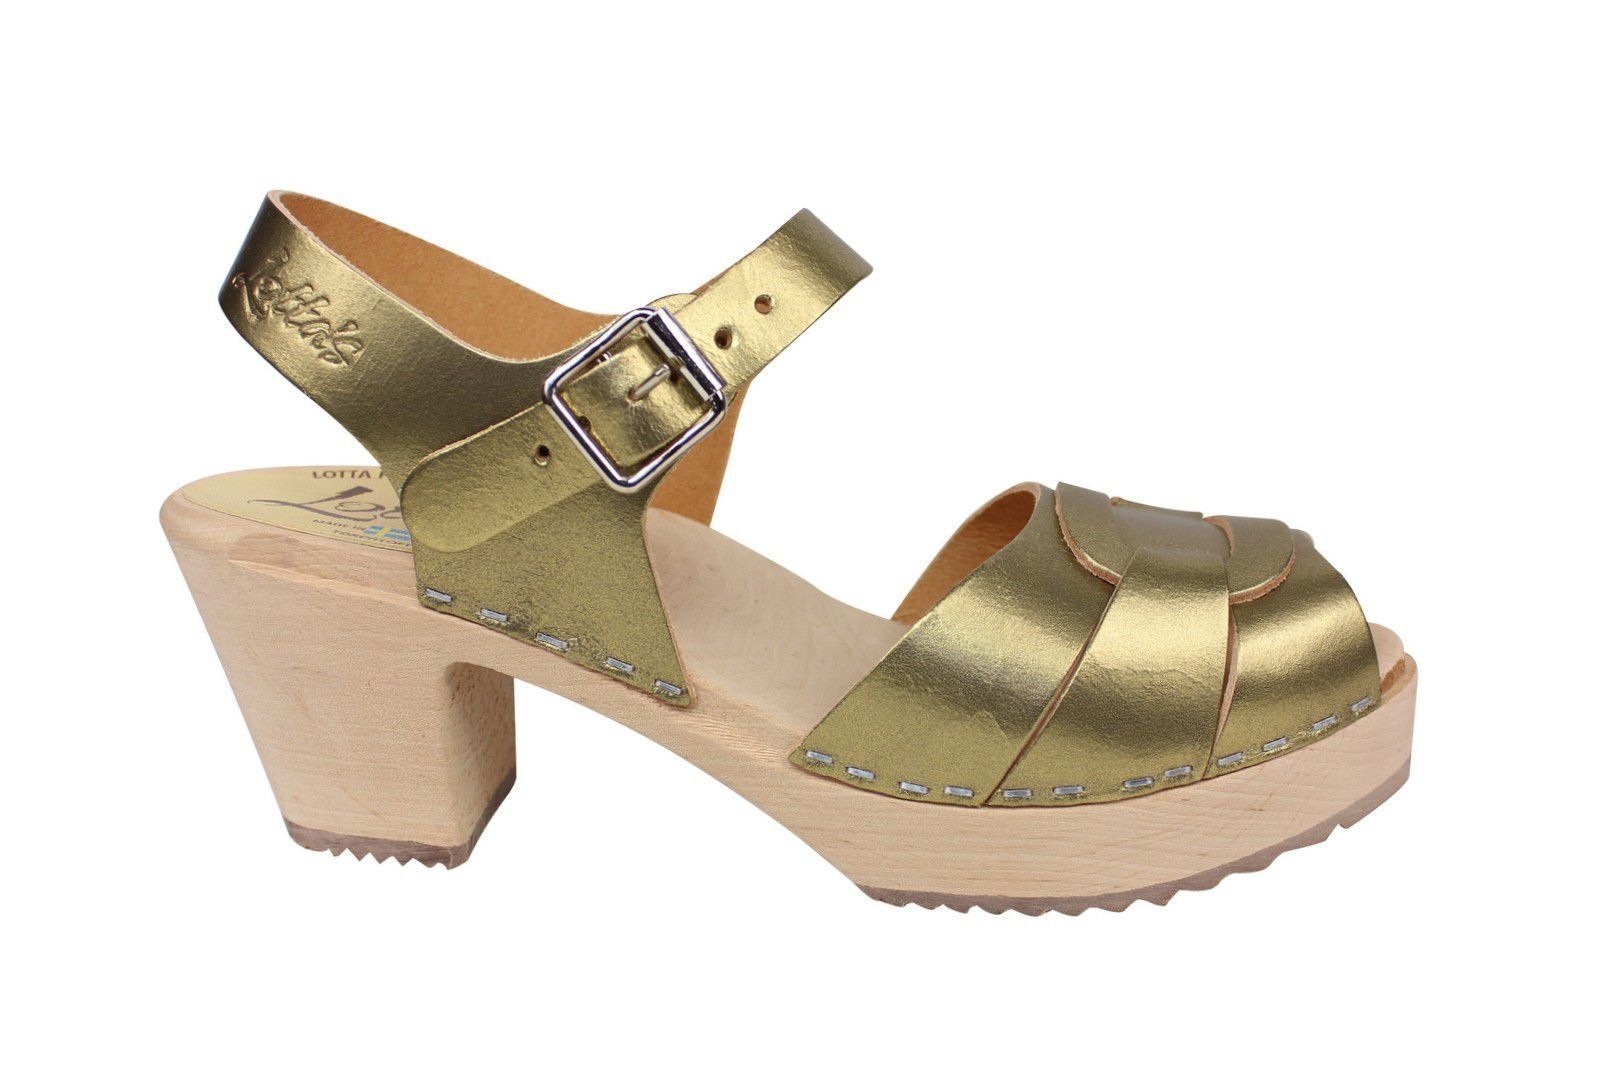 Lotta from Stockholm Peep Toe Antique Gold Side